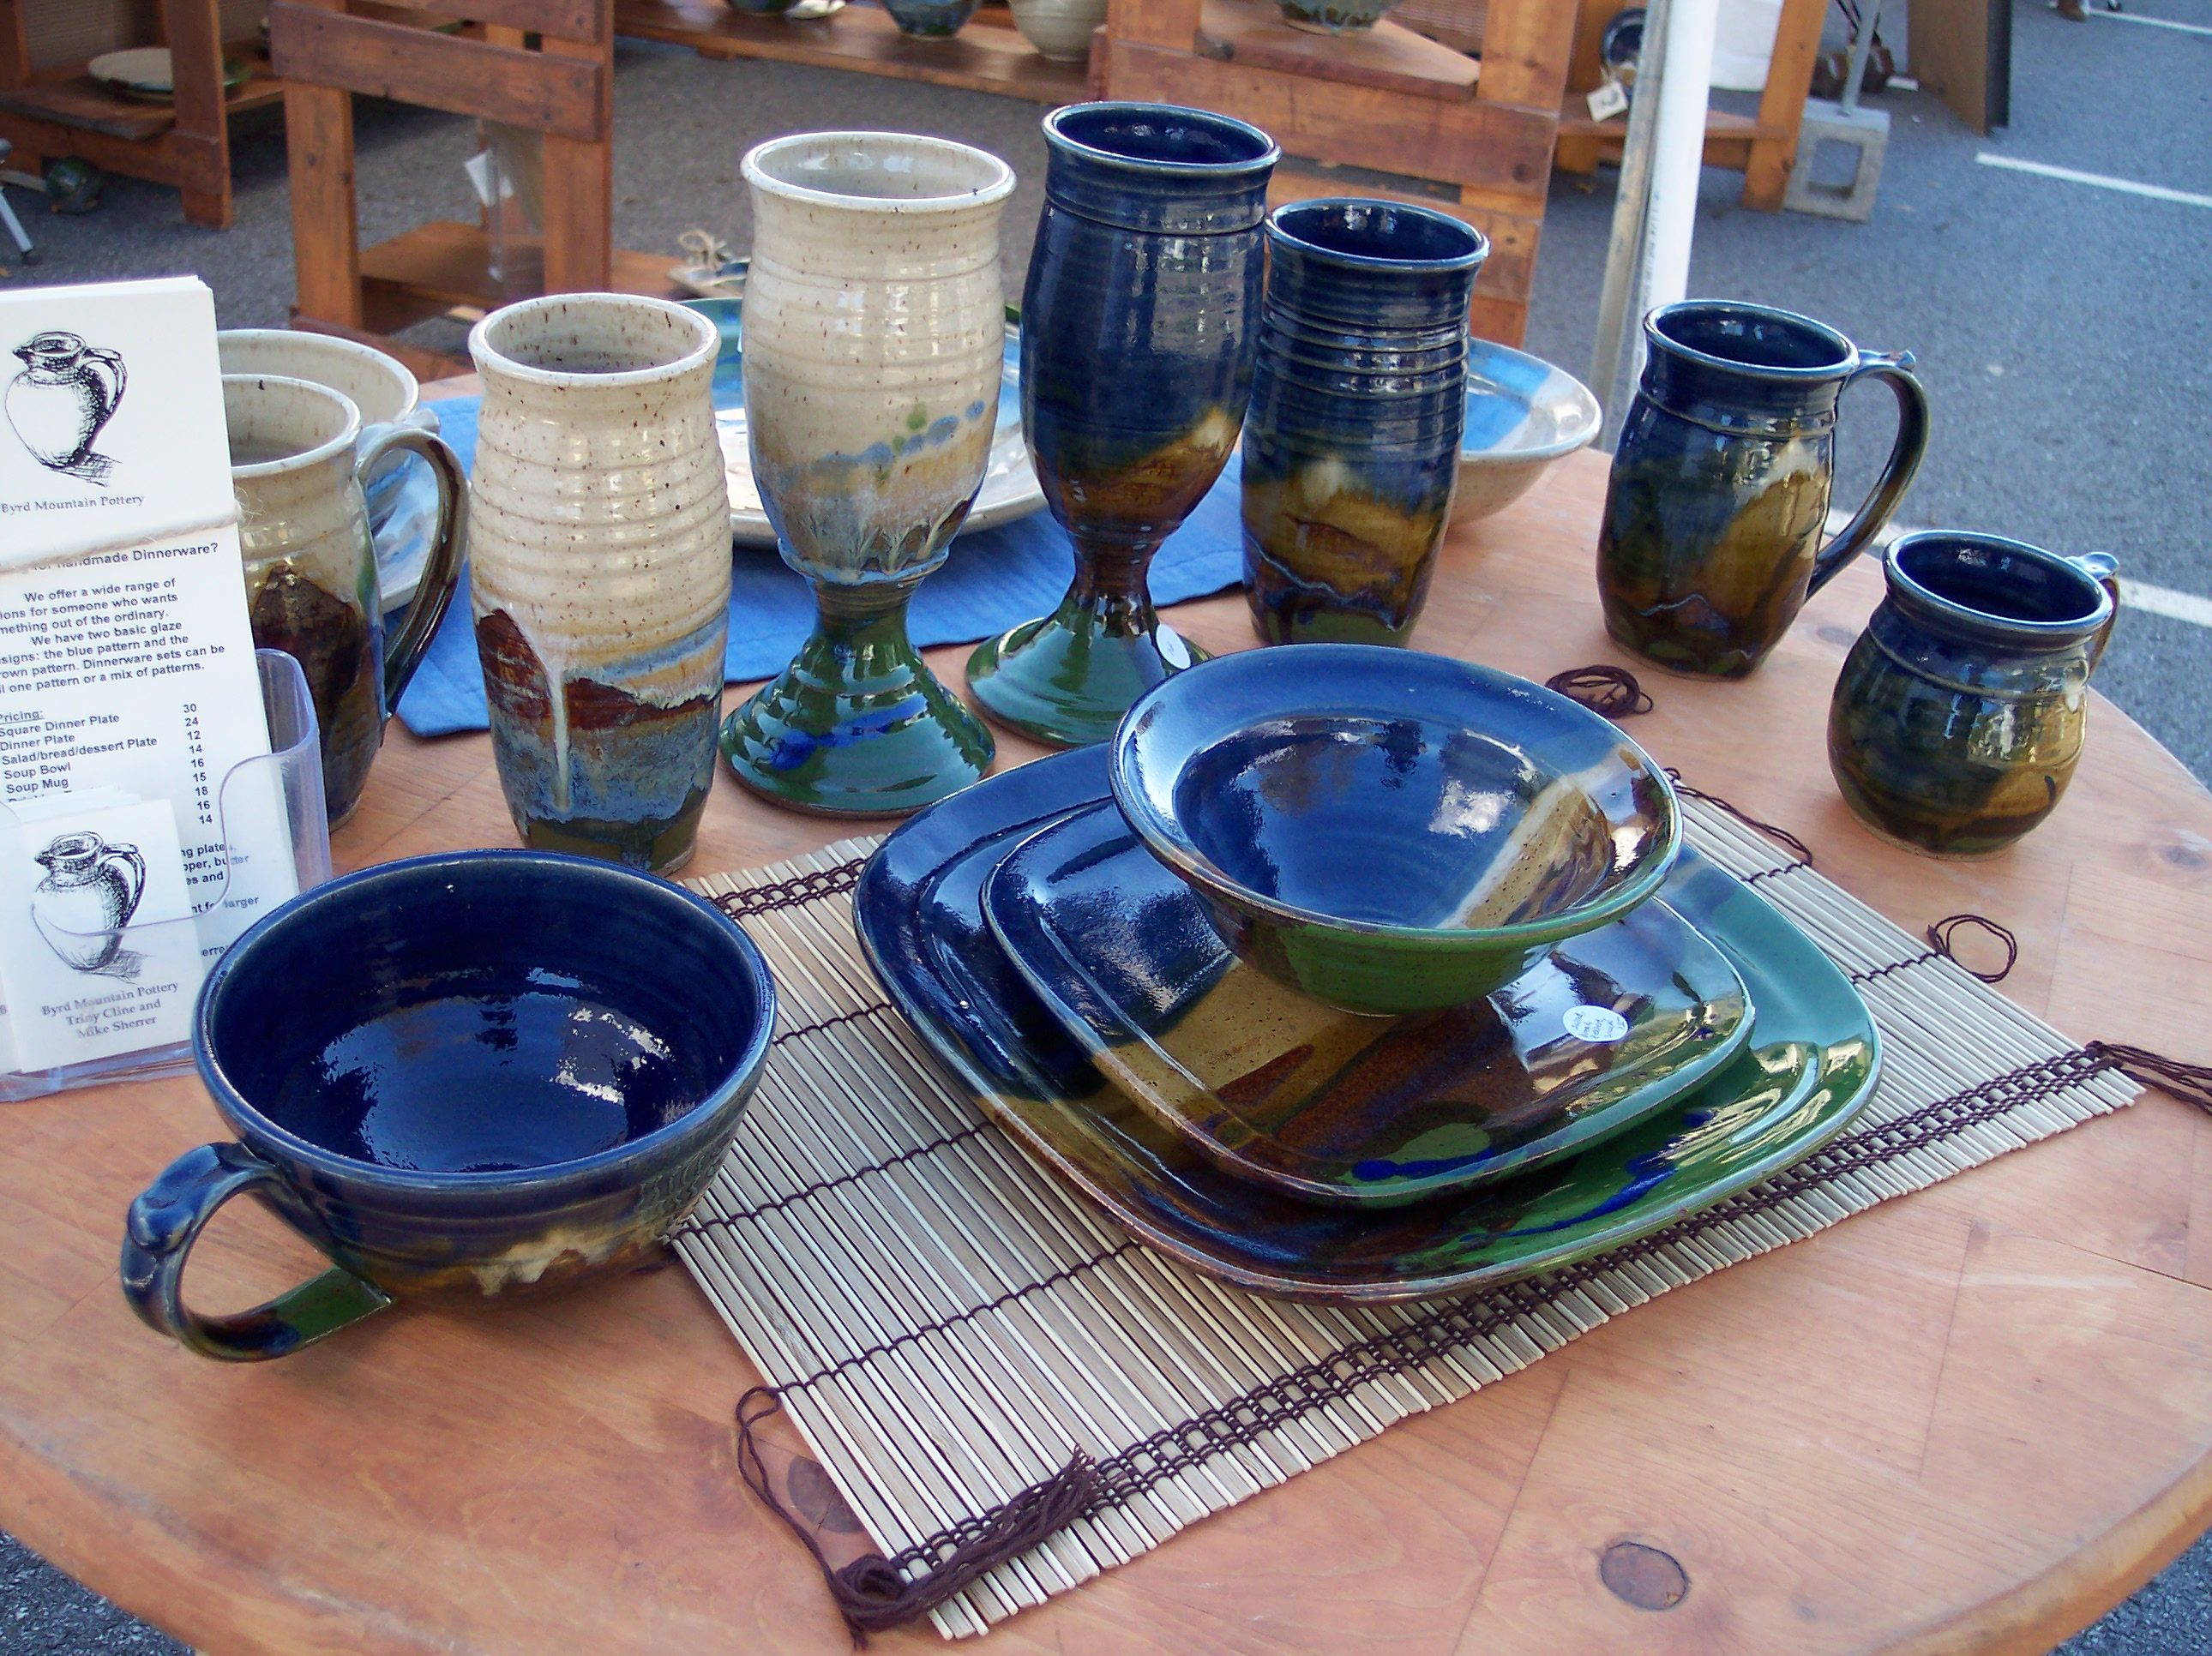 Blue Pattern w/Square Plates & beautiful handmade dinnerware - my favorite drinking glasses - byrd ...